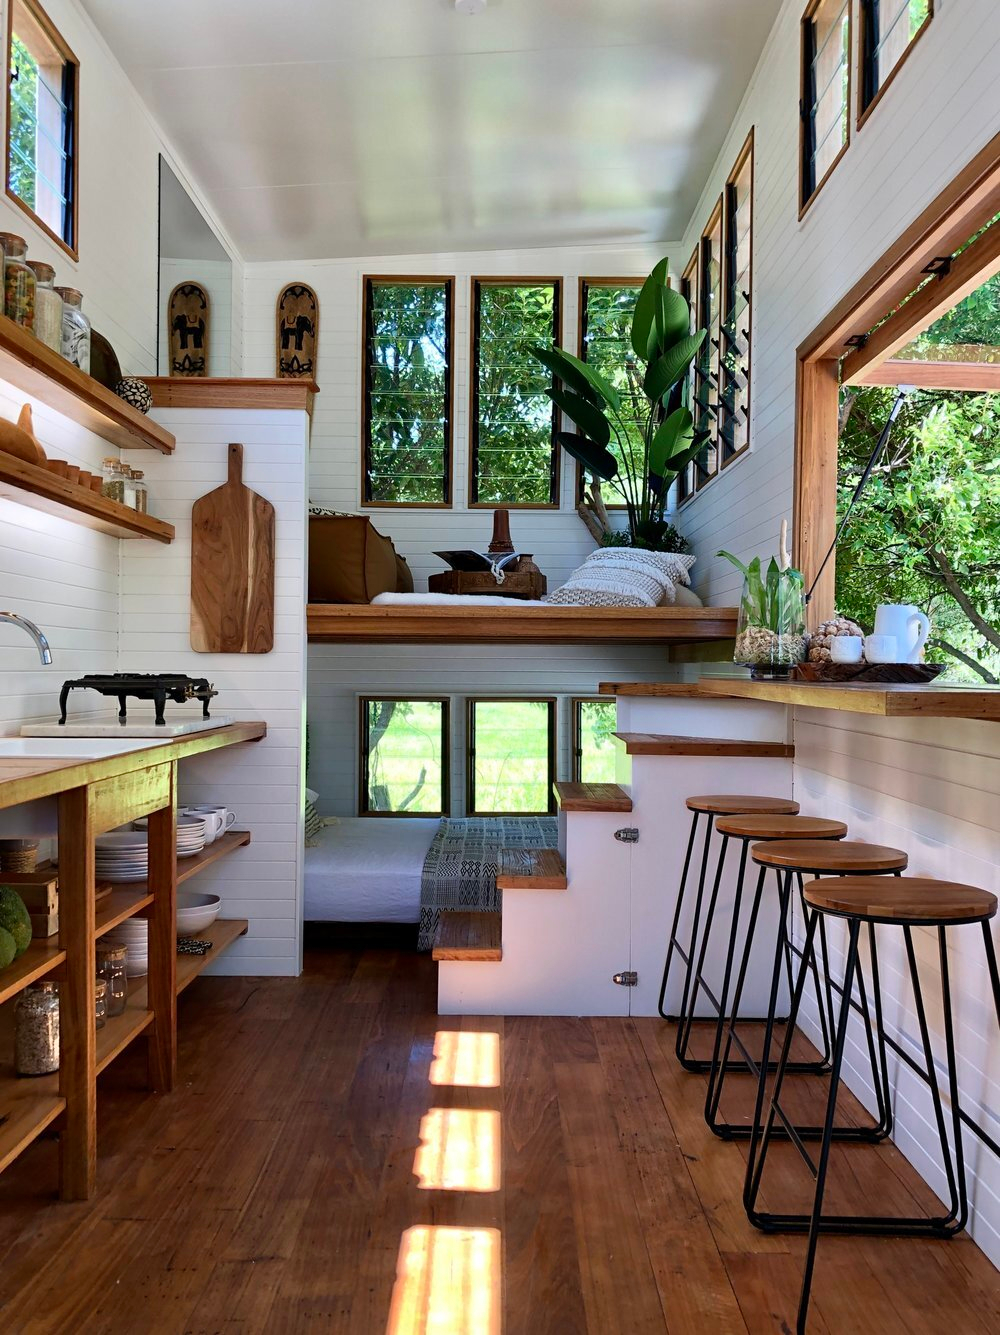 A Cozy Tiny Home Created by Little Byron — THE NORDROOM